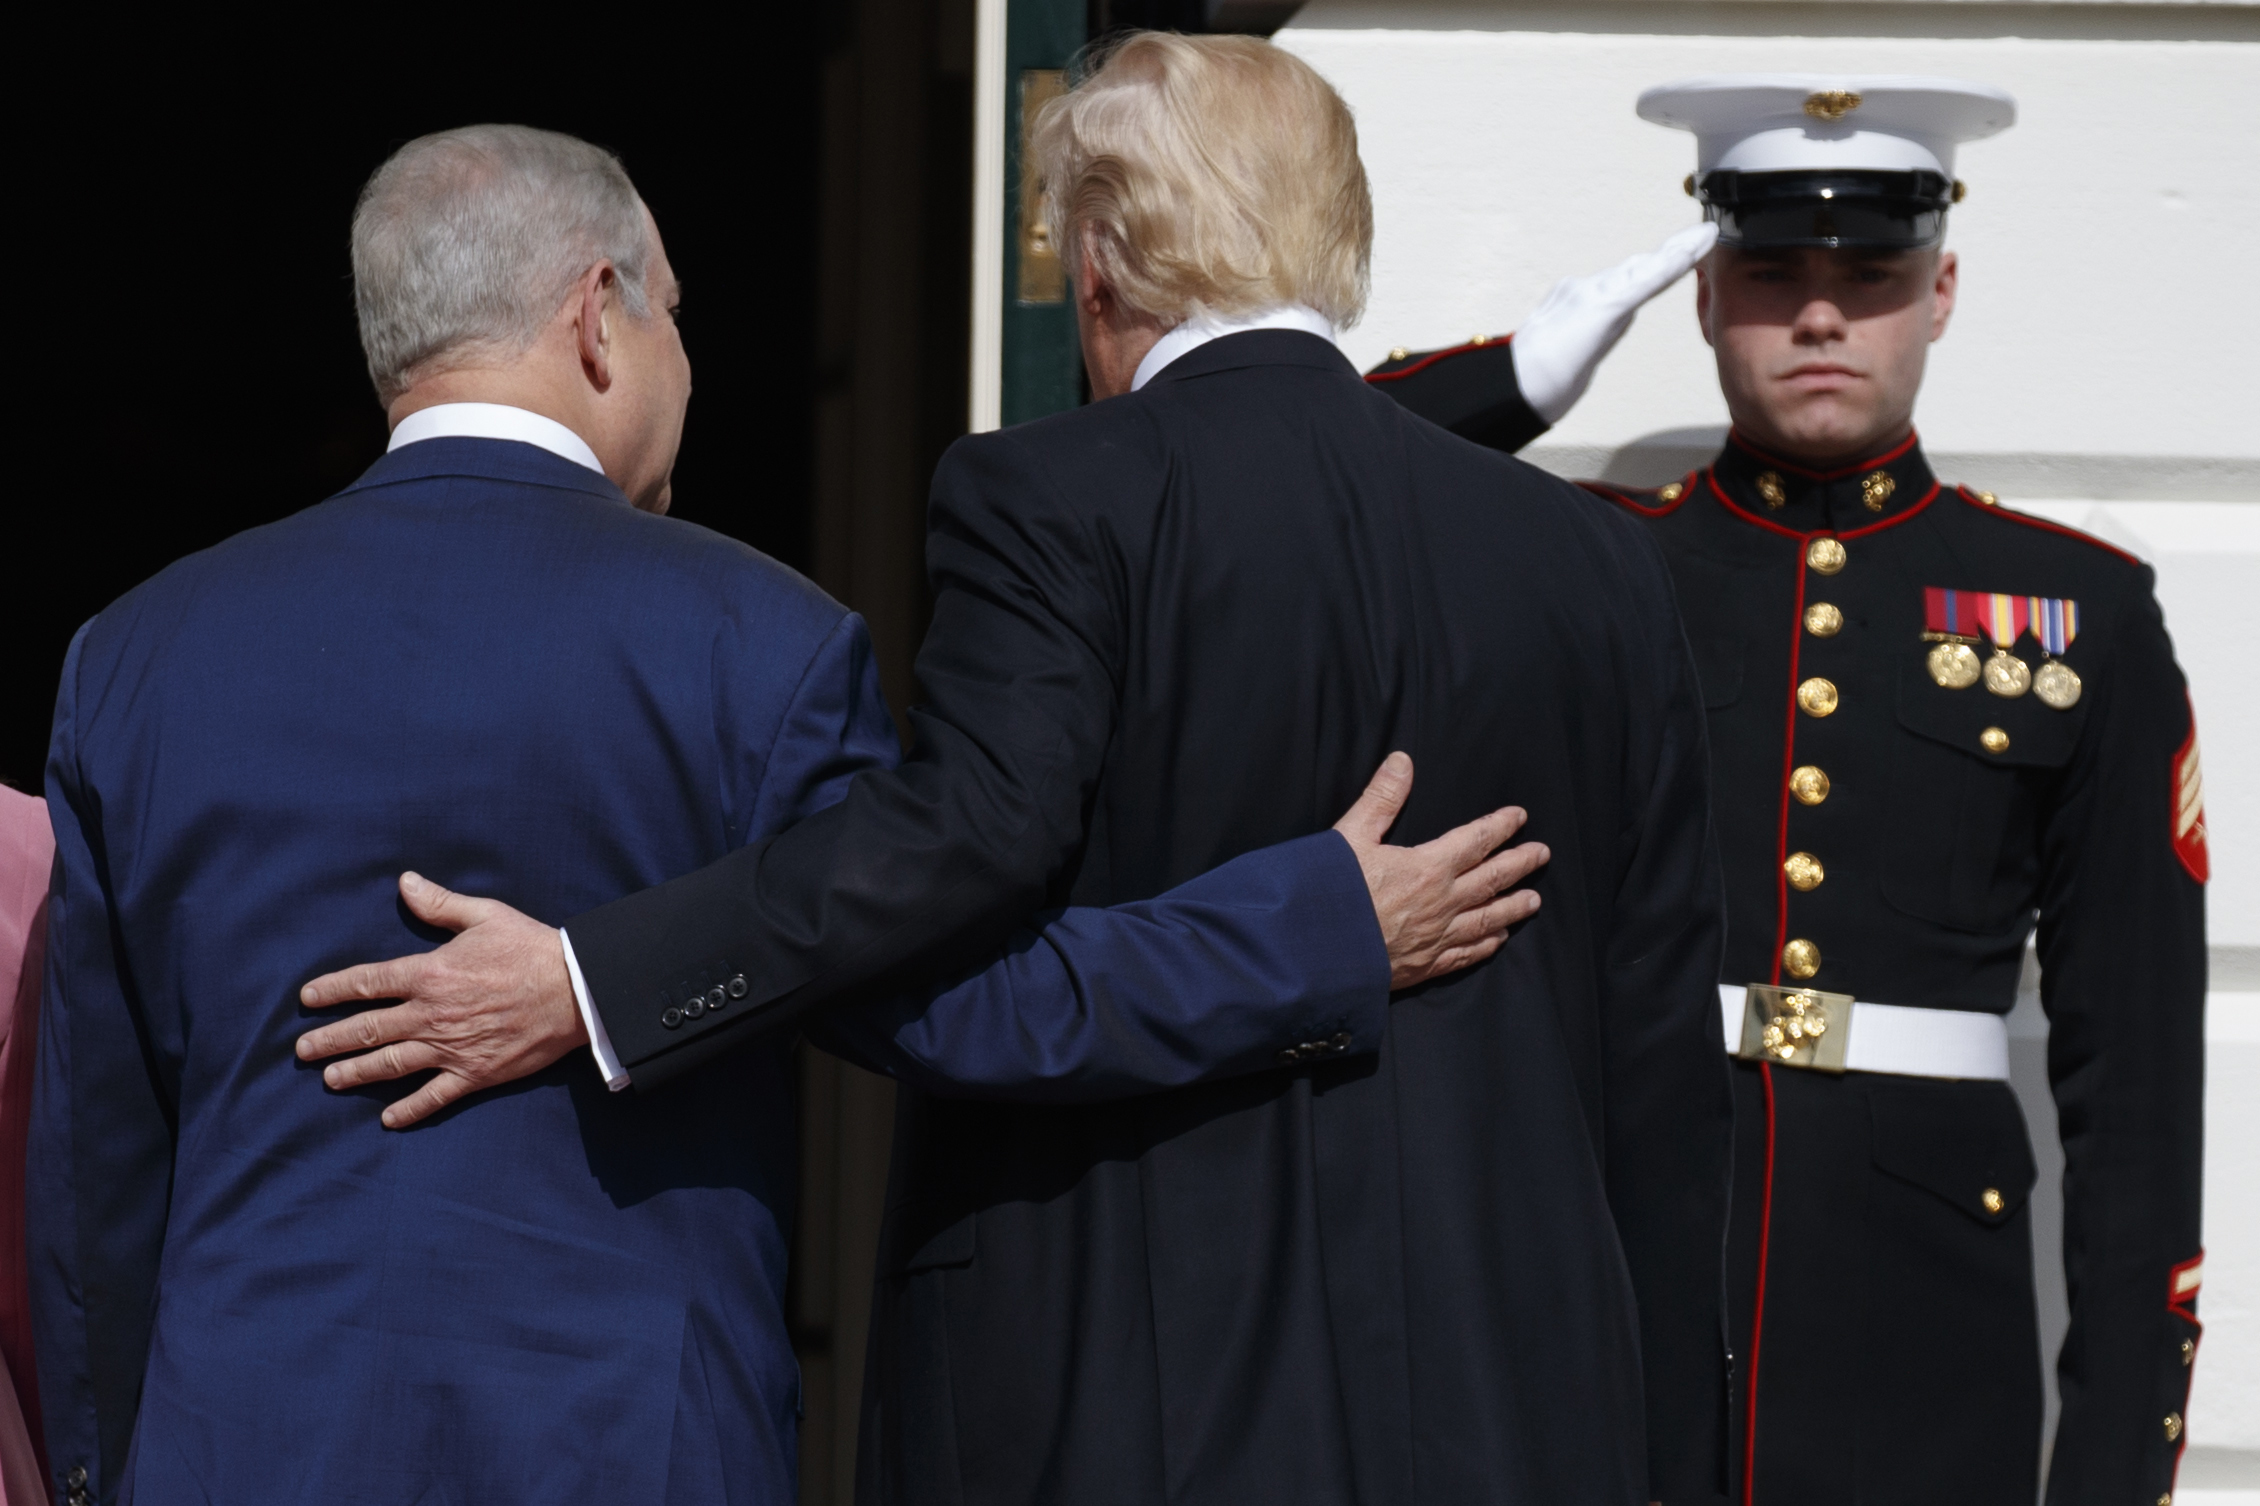 foto : evan vucci : president donald trump escorts israeli prime minister benjamin netanyahu into the white house in washington, wednesday, feb. 15, 2017. (ap photo/evan vucci)